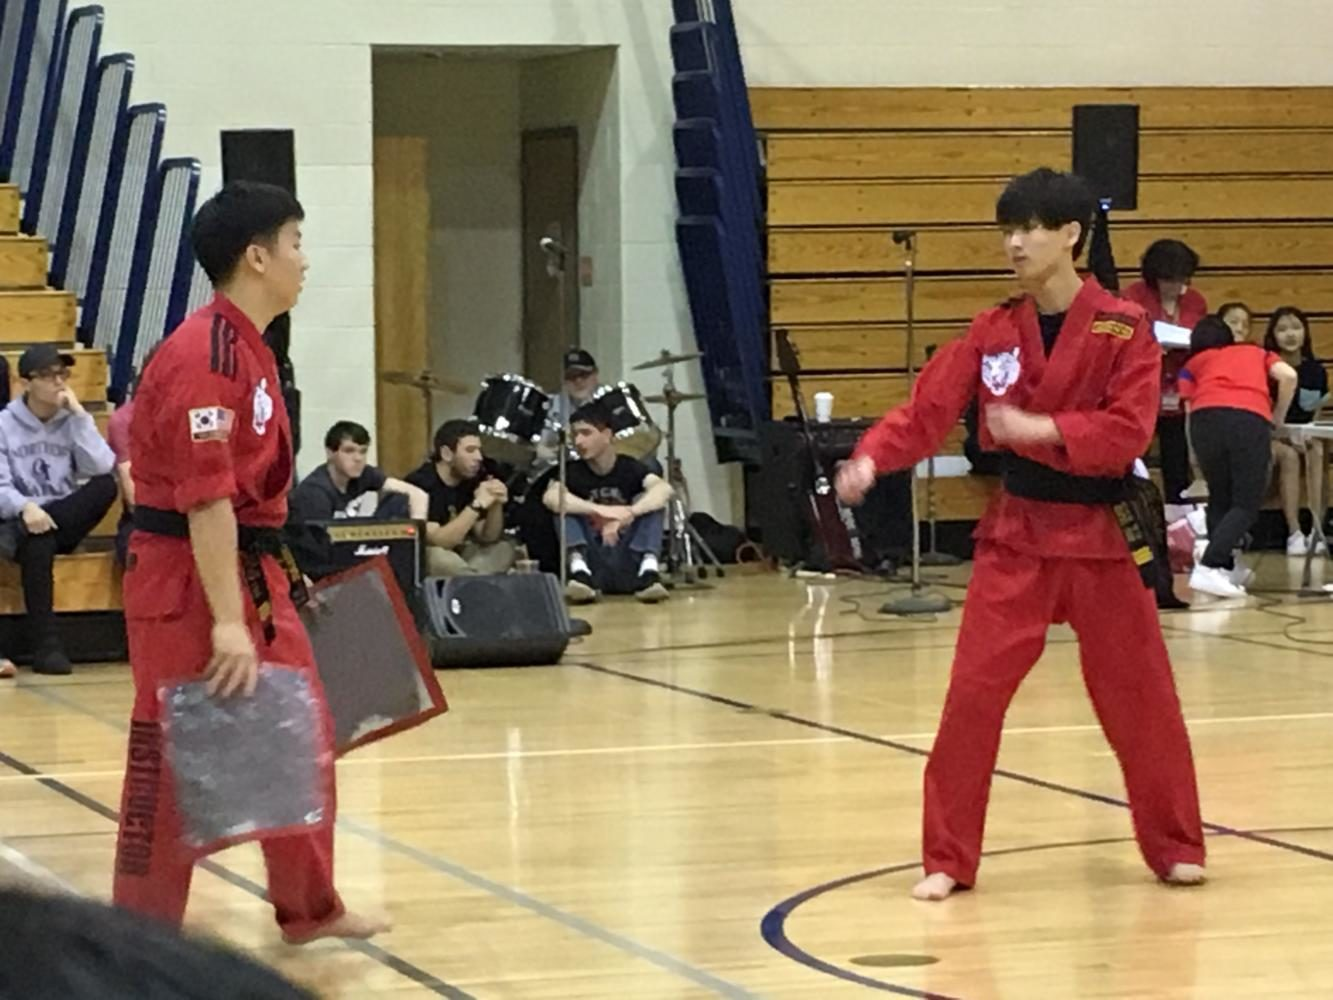 At Diversity Day, students demonstrated their taekwondo skills.